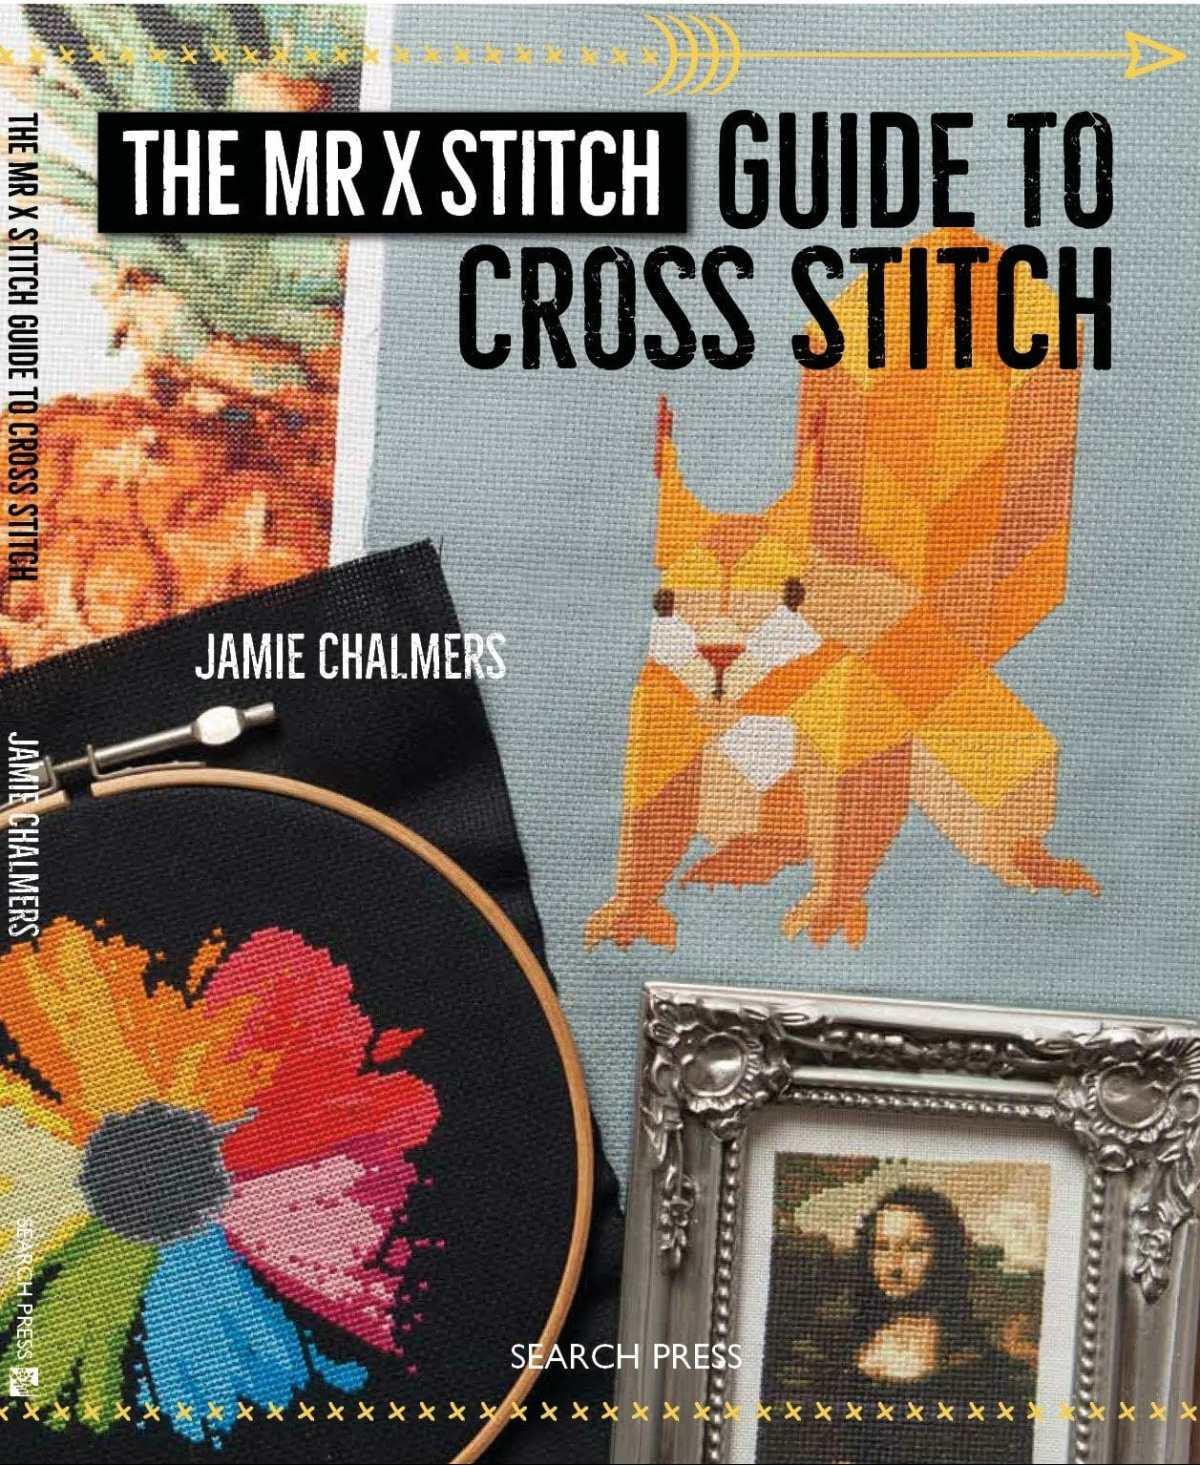 The Mr X Stitch Guide to Cross Stitch is here!